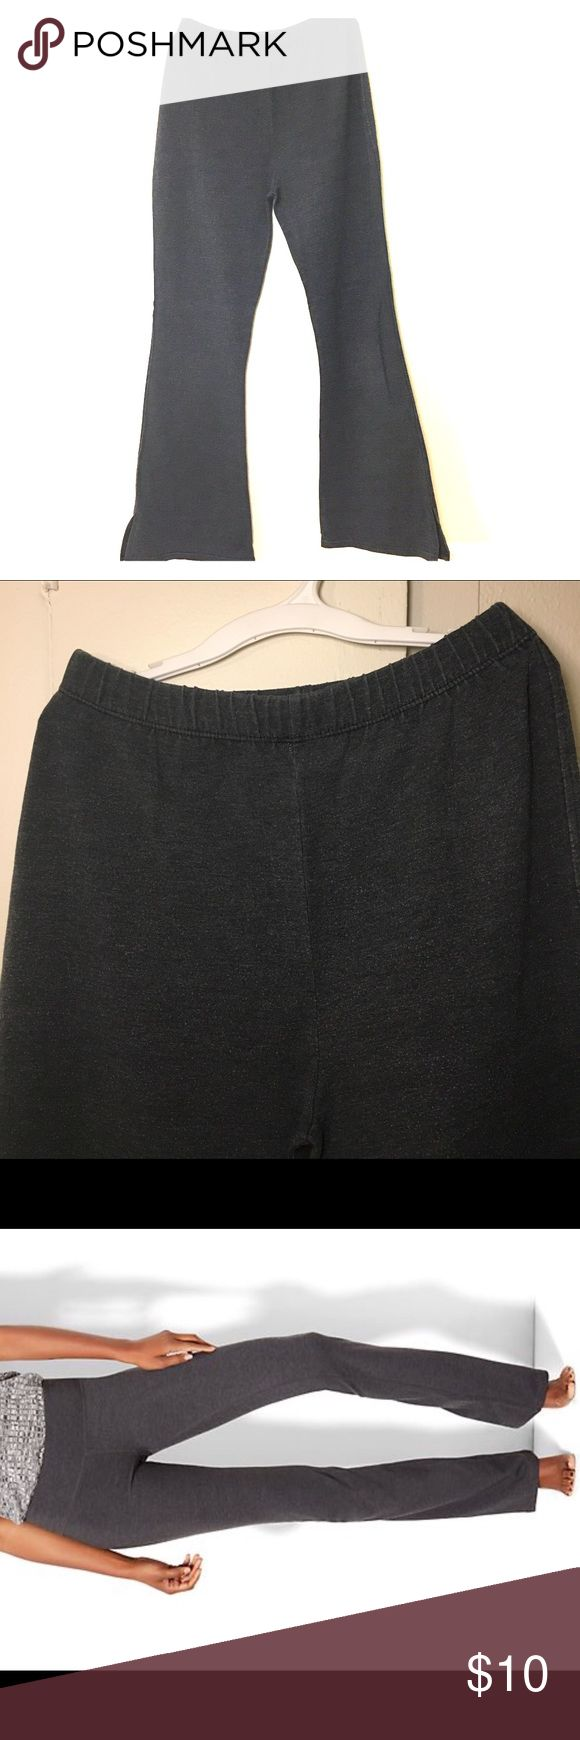 Yoga Pants Bootcut Graphite Heather Gray From workouts to running errands, we're loving any reason to spend the weekend in these slimming and streamlined bootcut yoga pants, featuring a cotton-stretch fabric.  OVERVIEW Full elastic waist. Flat front. Basic yoga pant.  FIT & SIZING Bootcut. Full length. Sits at lower waist. Slimming through hip & thigh. Size: S (155cm)  FABRIC & CARE 57% Cotton, 38% Polyester, 5% Spandex. Machine Wash. Imported. Pants Track Pants & Joggers